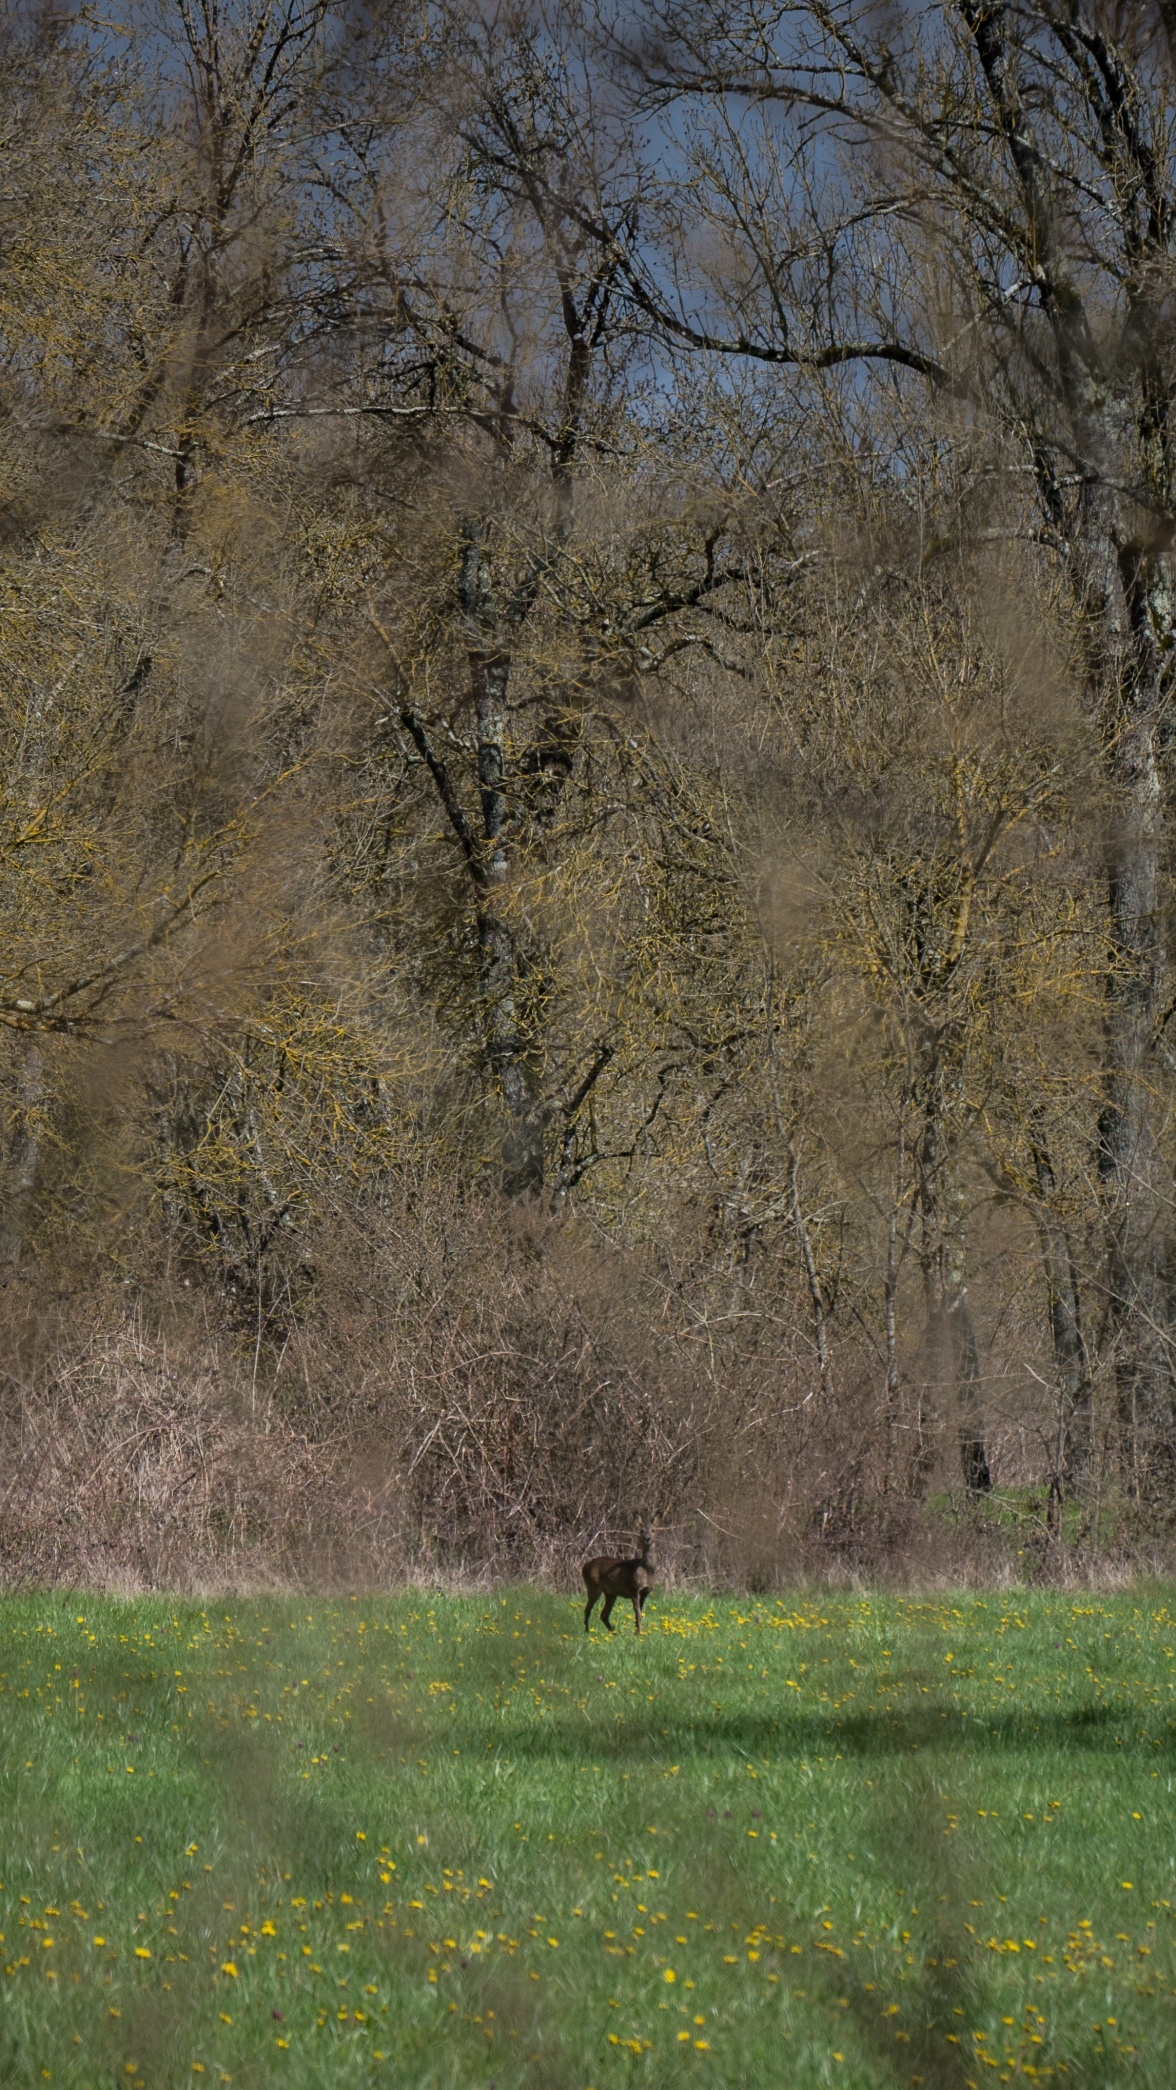 Red deer on the edge